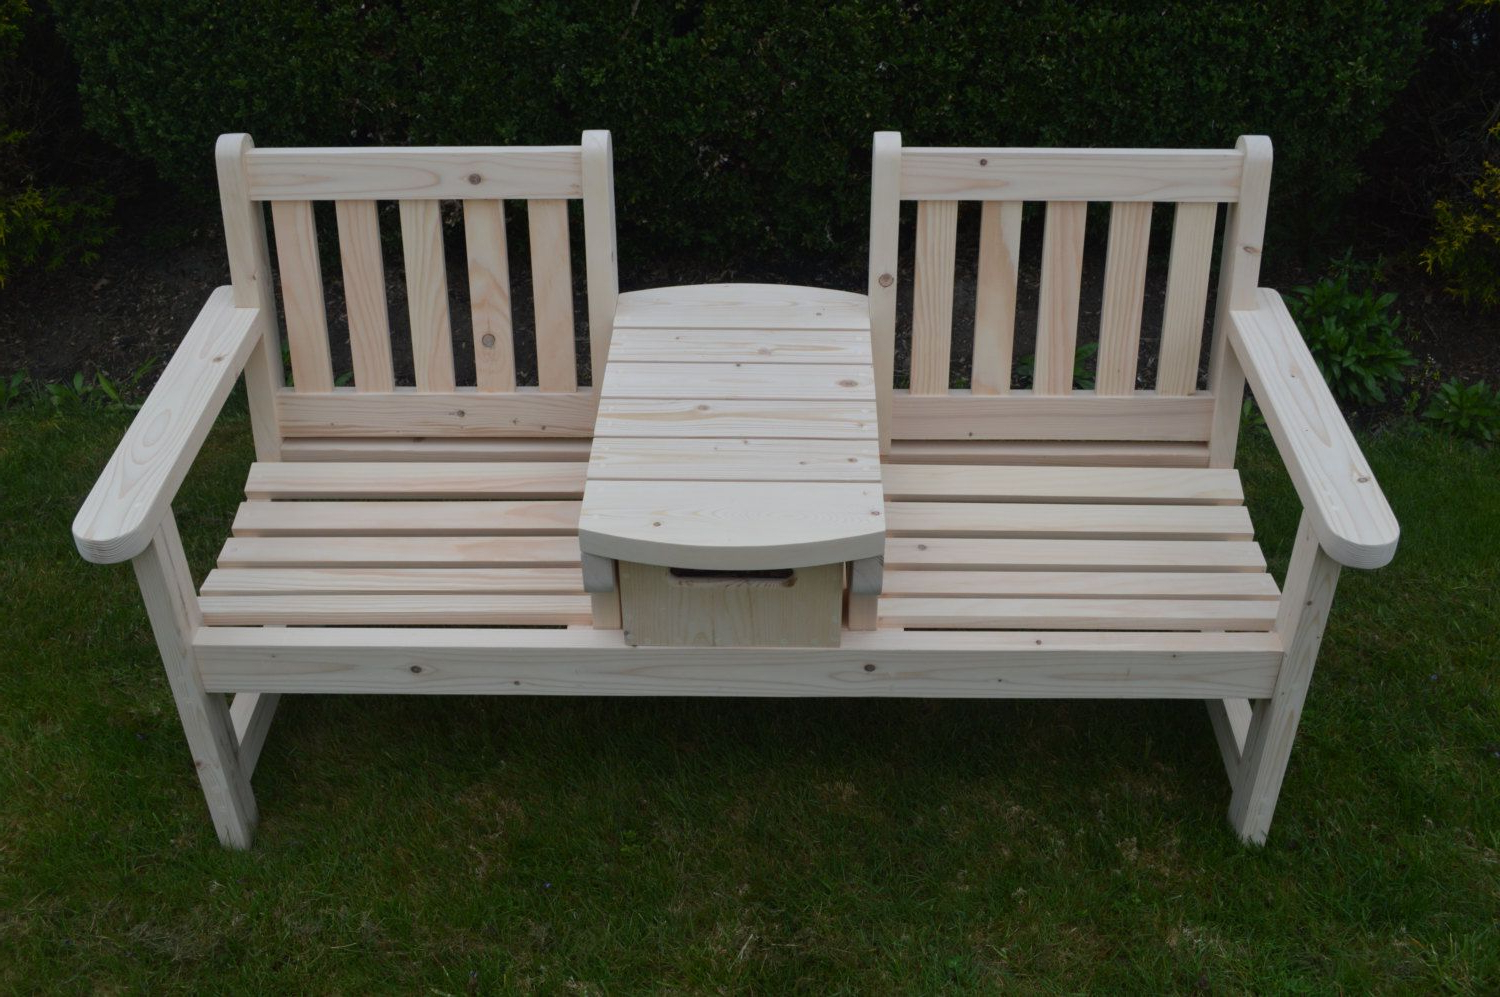 English Twin Seater Bench With Table And Wood Crate Drawer With Well Known Twin Seat Glider Benches (View 8 of 31)